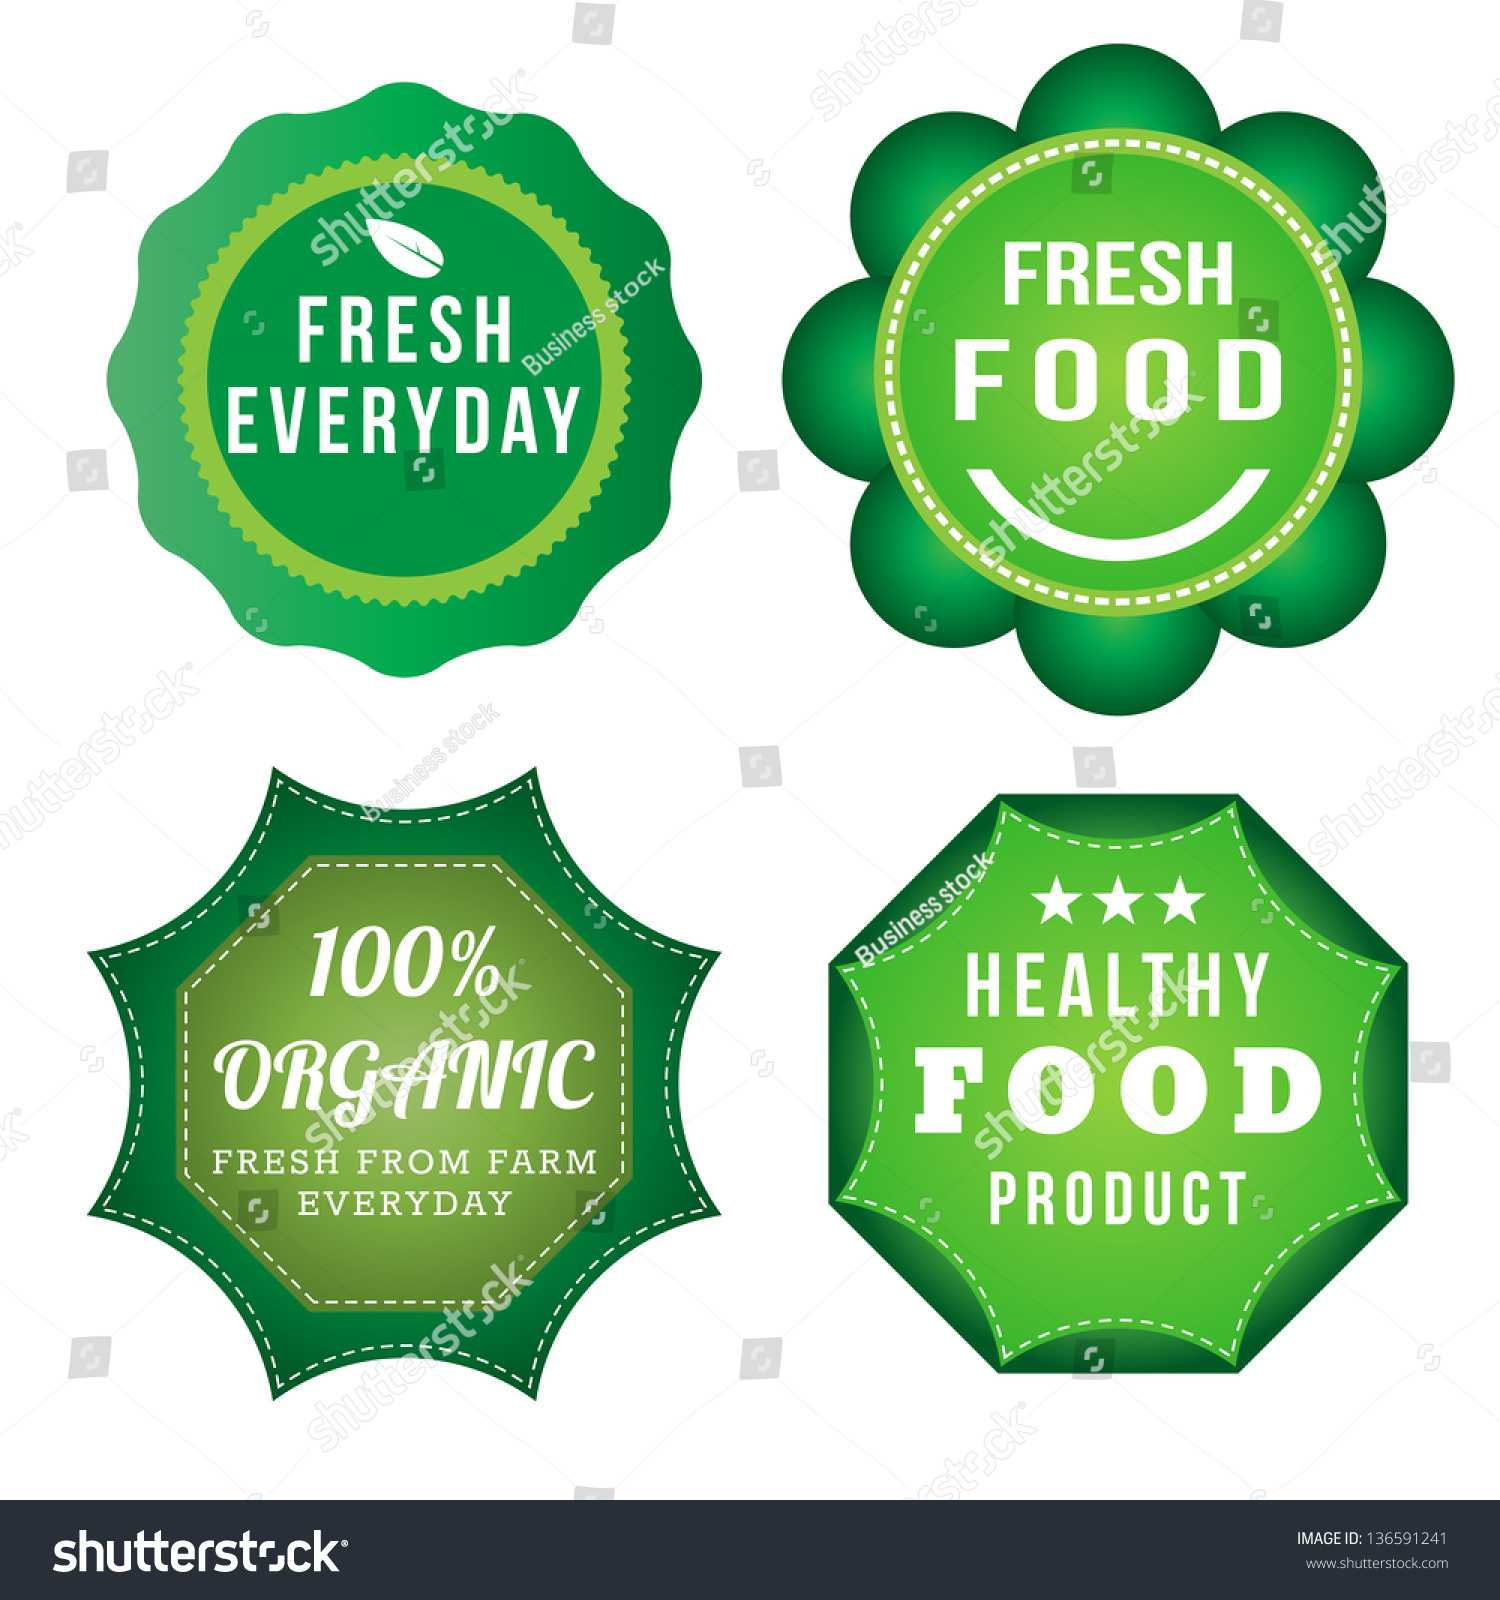 Fresh Food Product Vintage Labels Template Stock Vector Intended For Food Product Labels Template